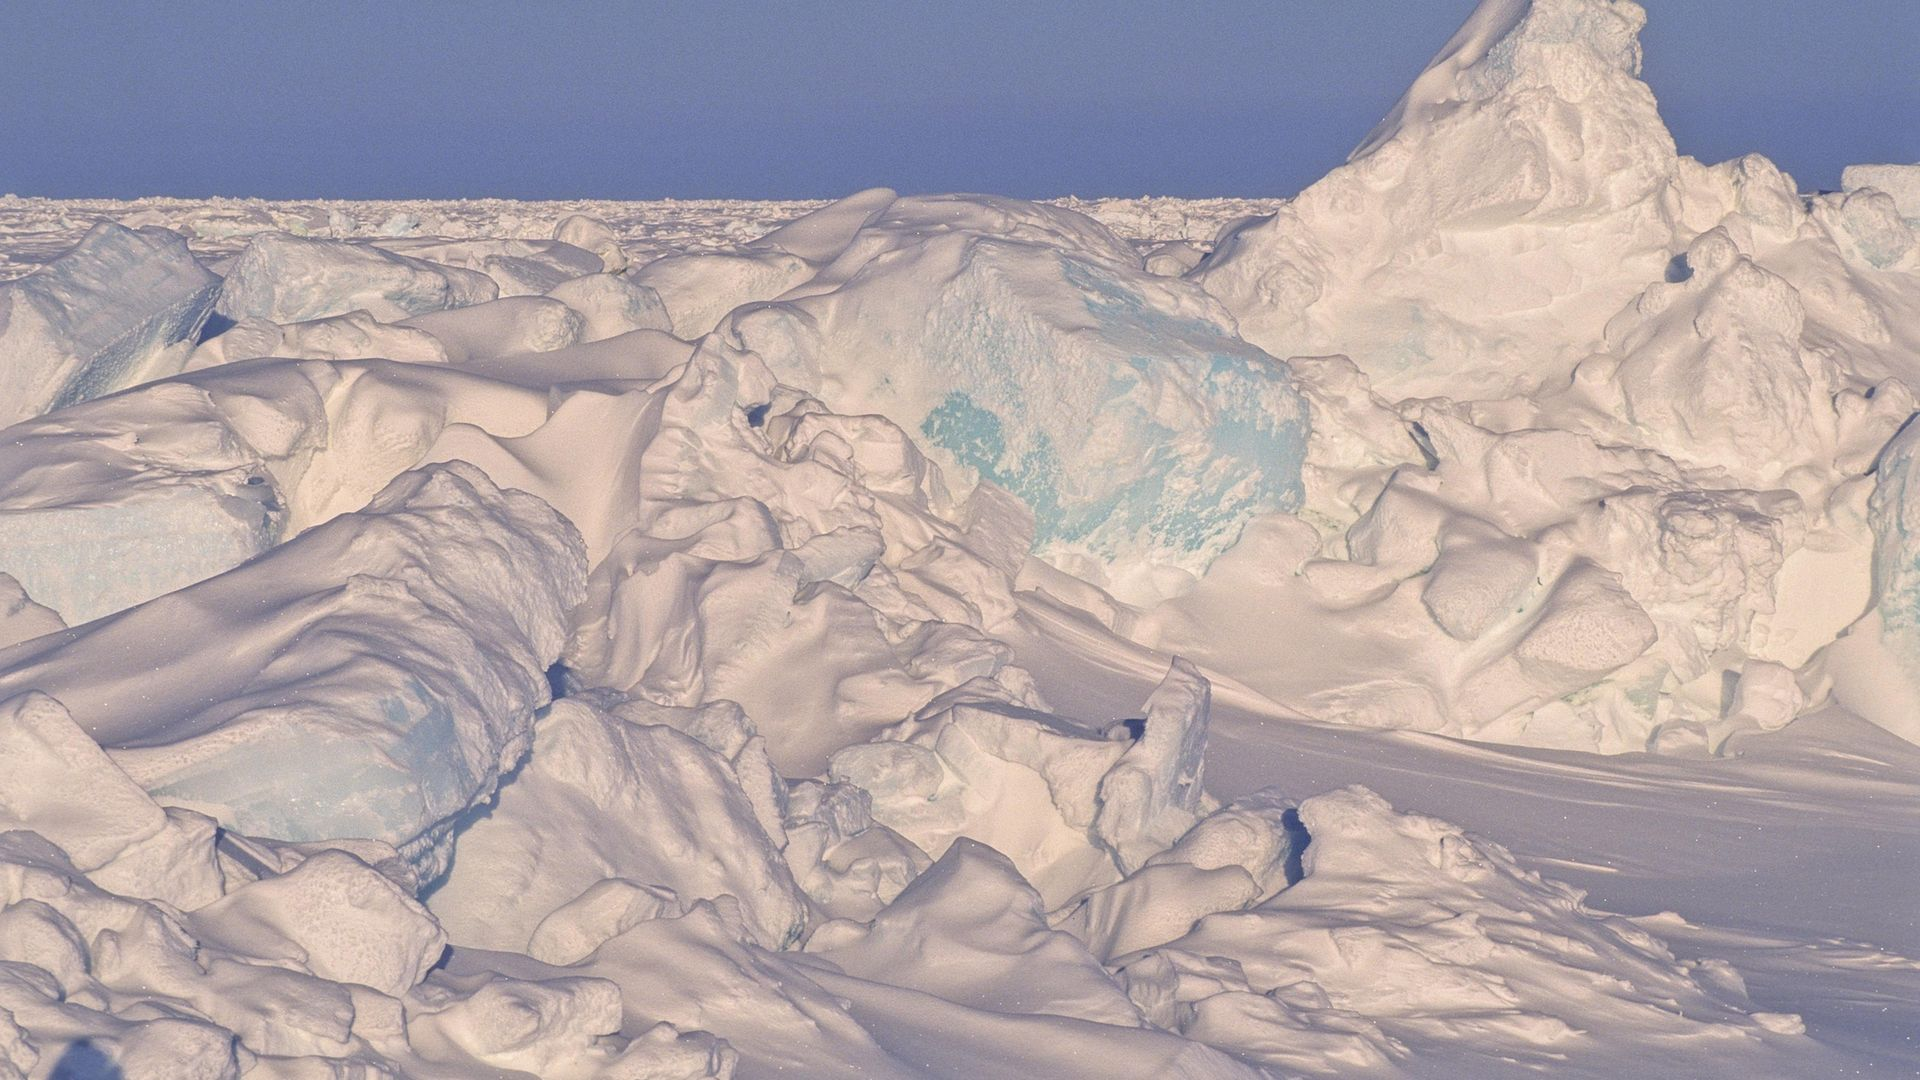 Compression crests of the ice pack close to the North Pole - Credit: Gamma-Rapho via Getty Images